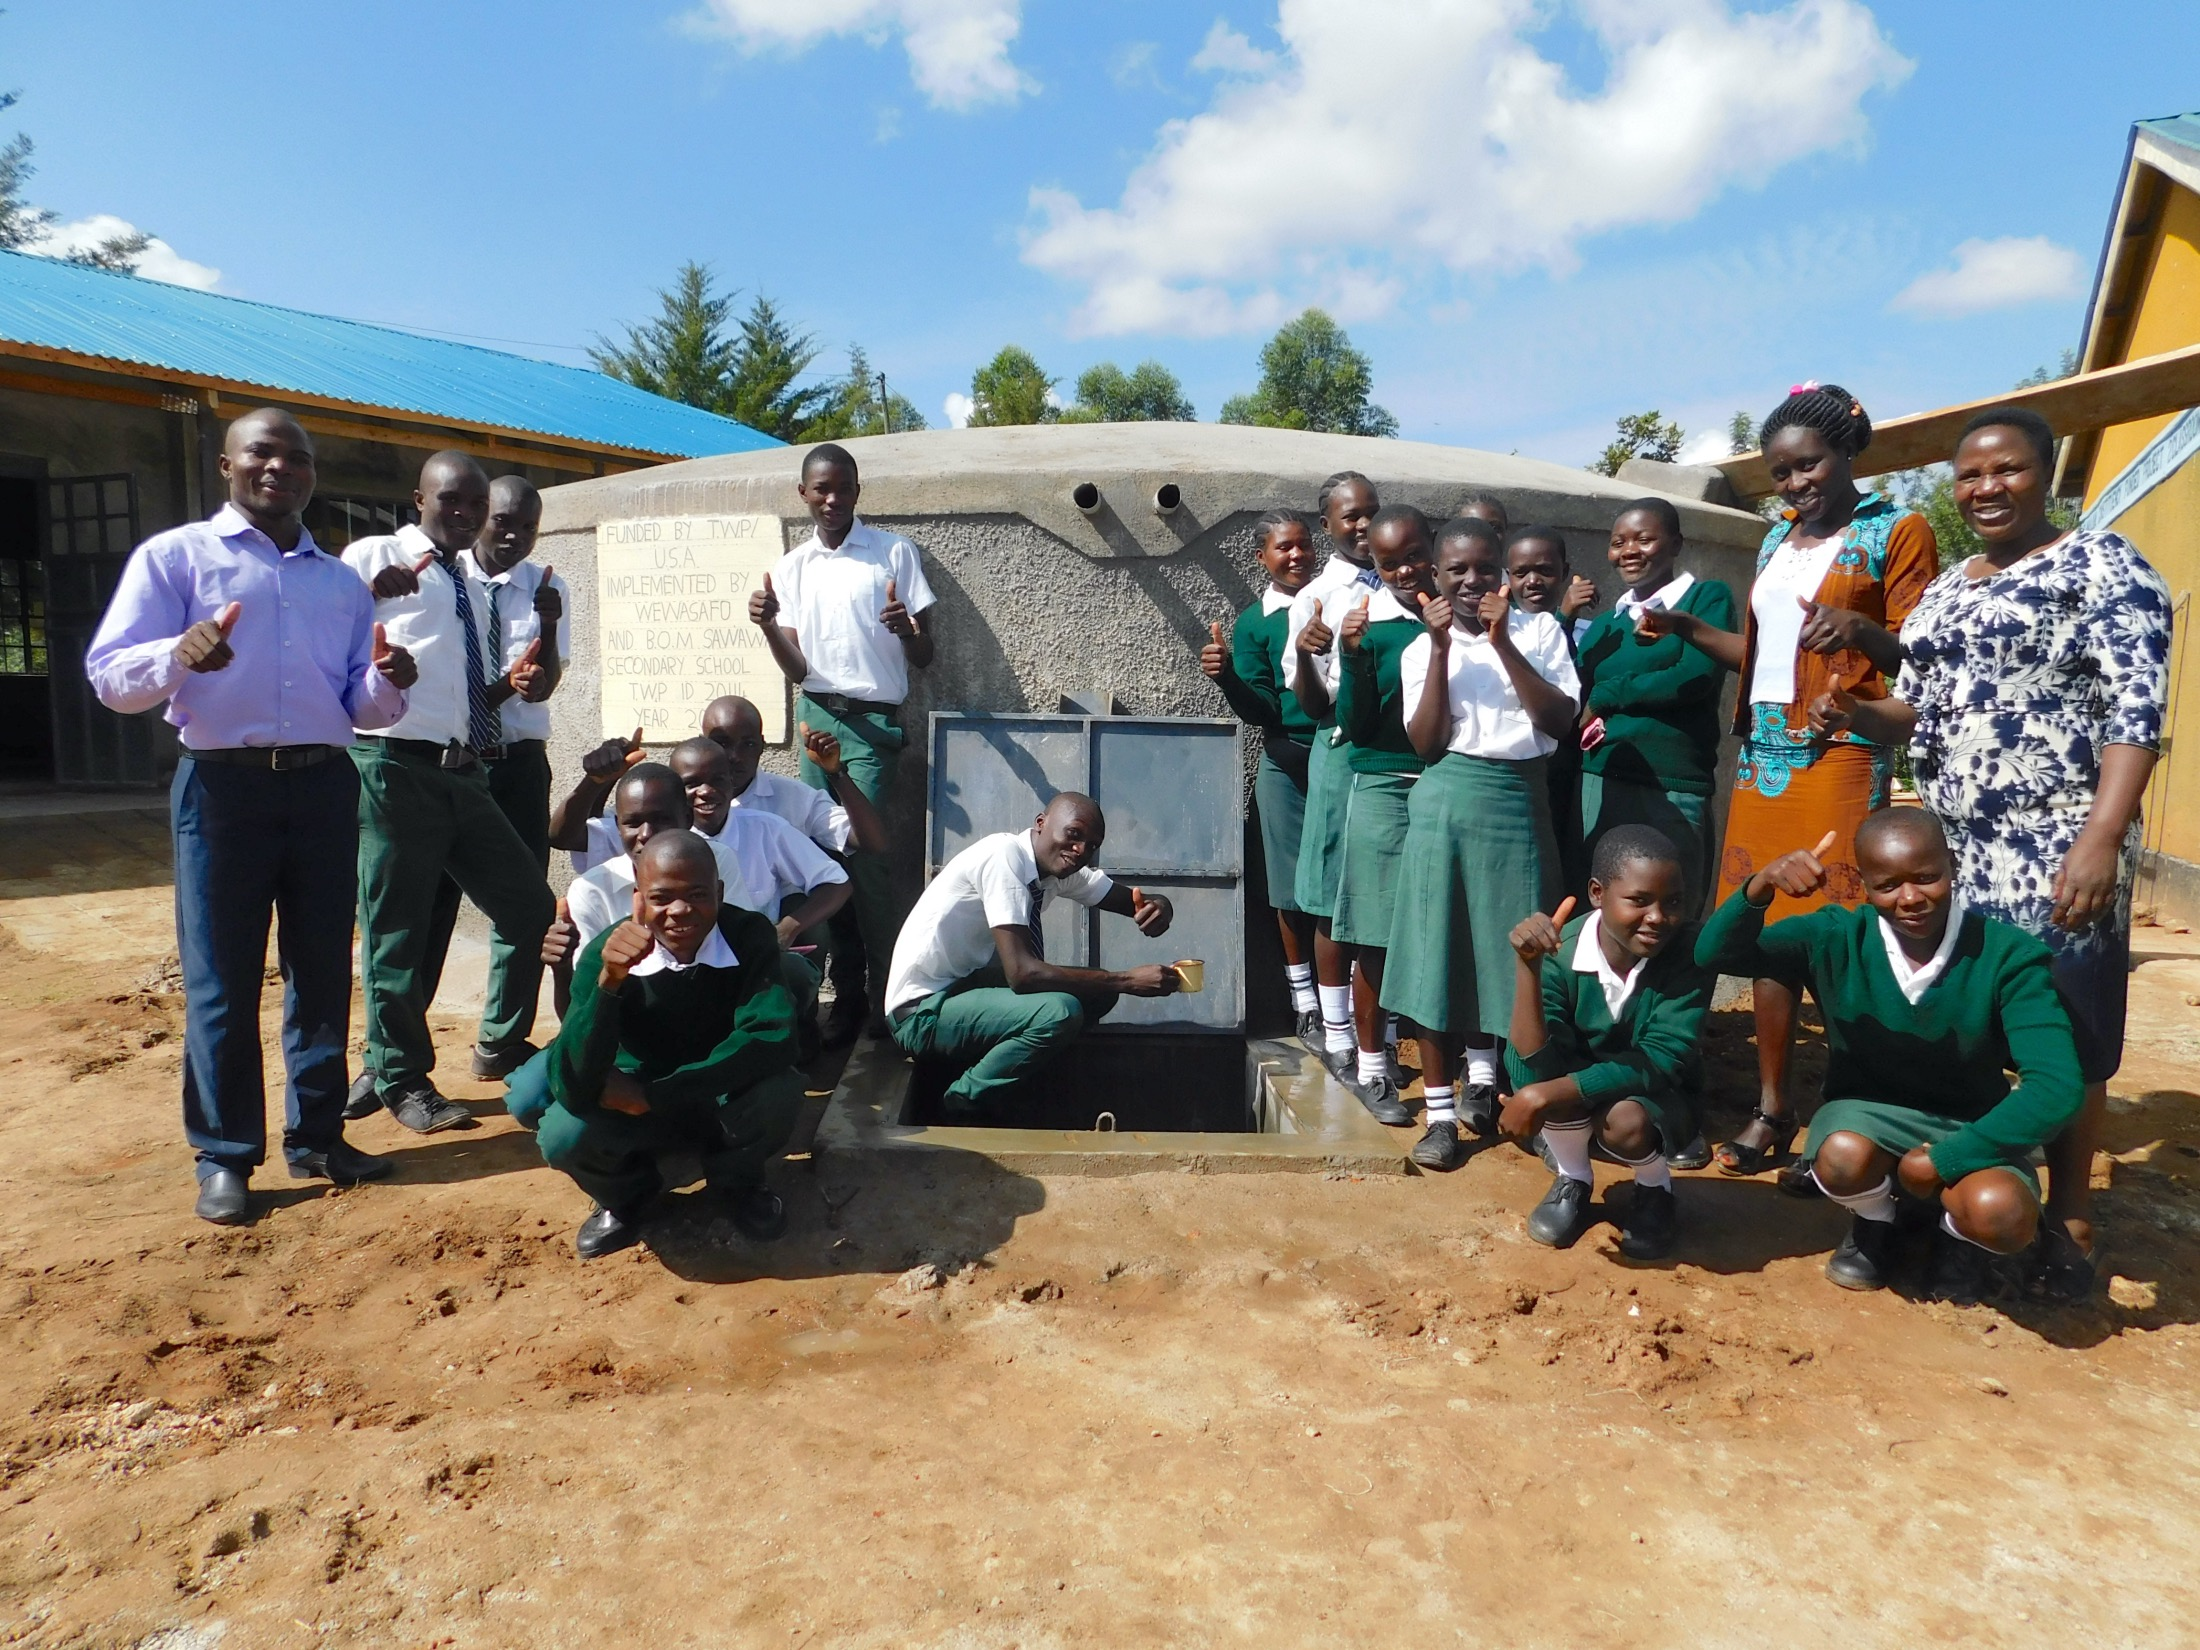 The Water Project : 45-kenya20114-entire-student-health-club-celebrates